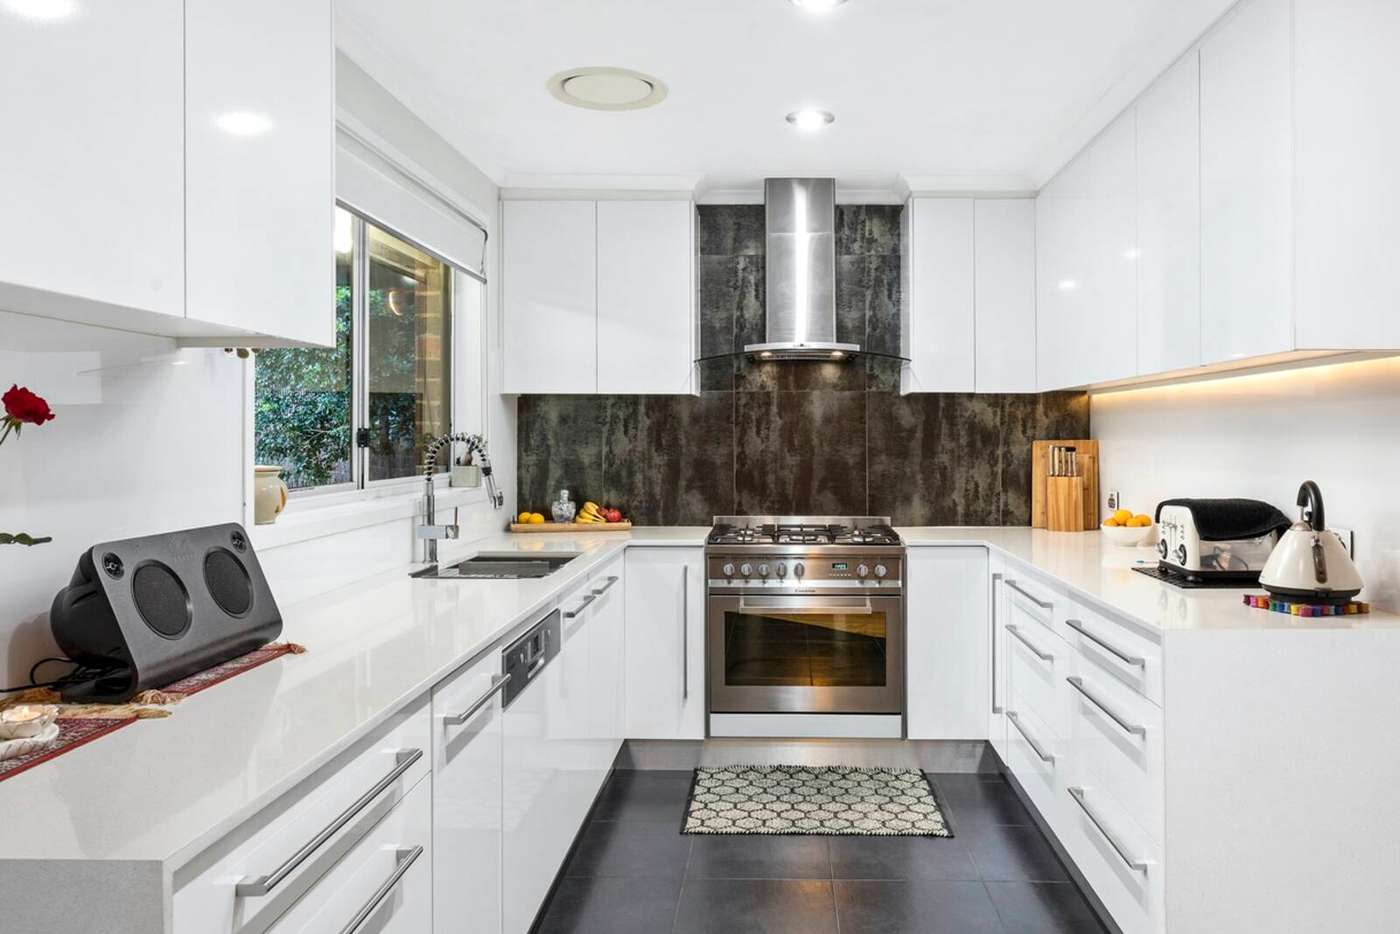 Main view of Homely house listing, 7 Bates Avenue, Blaxland NSW 2774